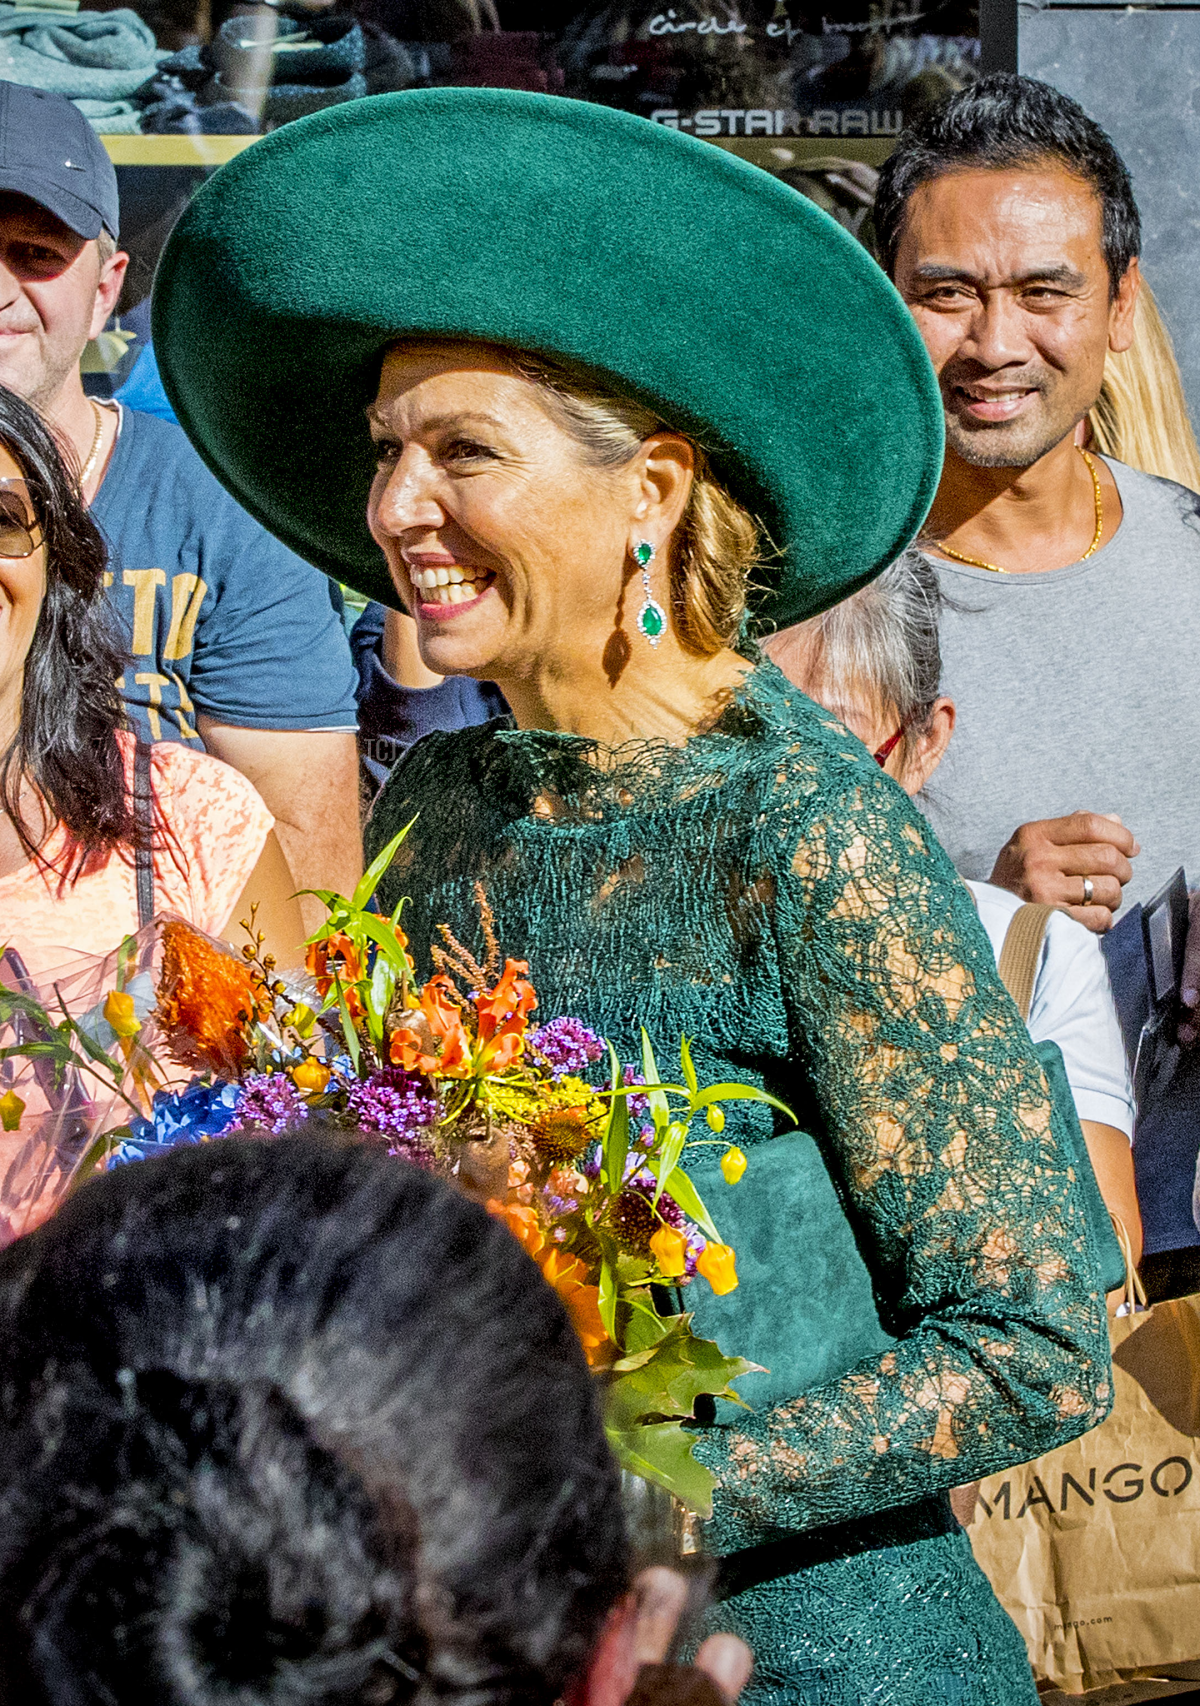 Queen Maxima of The Netherlands attends the 20th anniversary of the Leidsche Rijn area in Utrecht on October 5, 2018